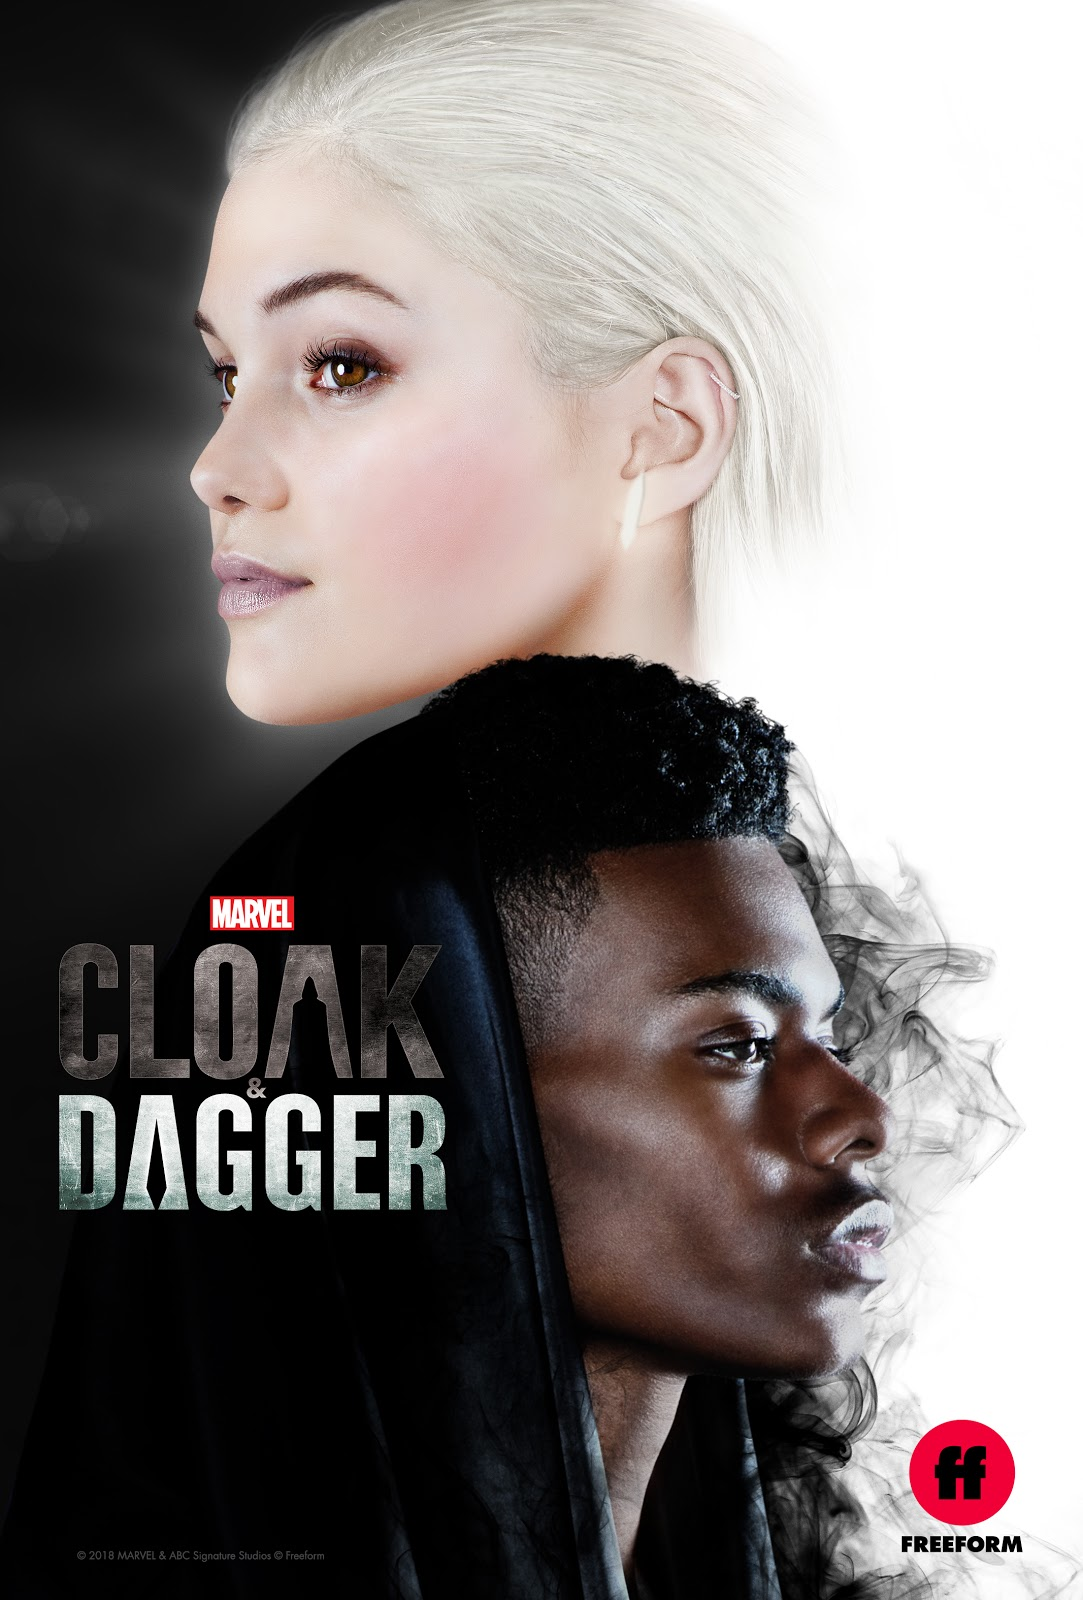 Marvel's Cloak and Dagger season 1 key art poster